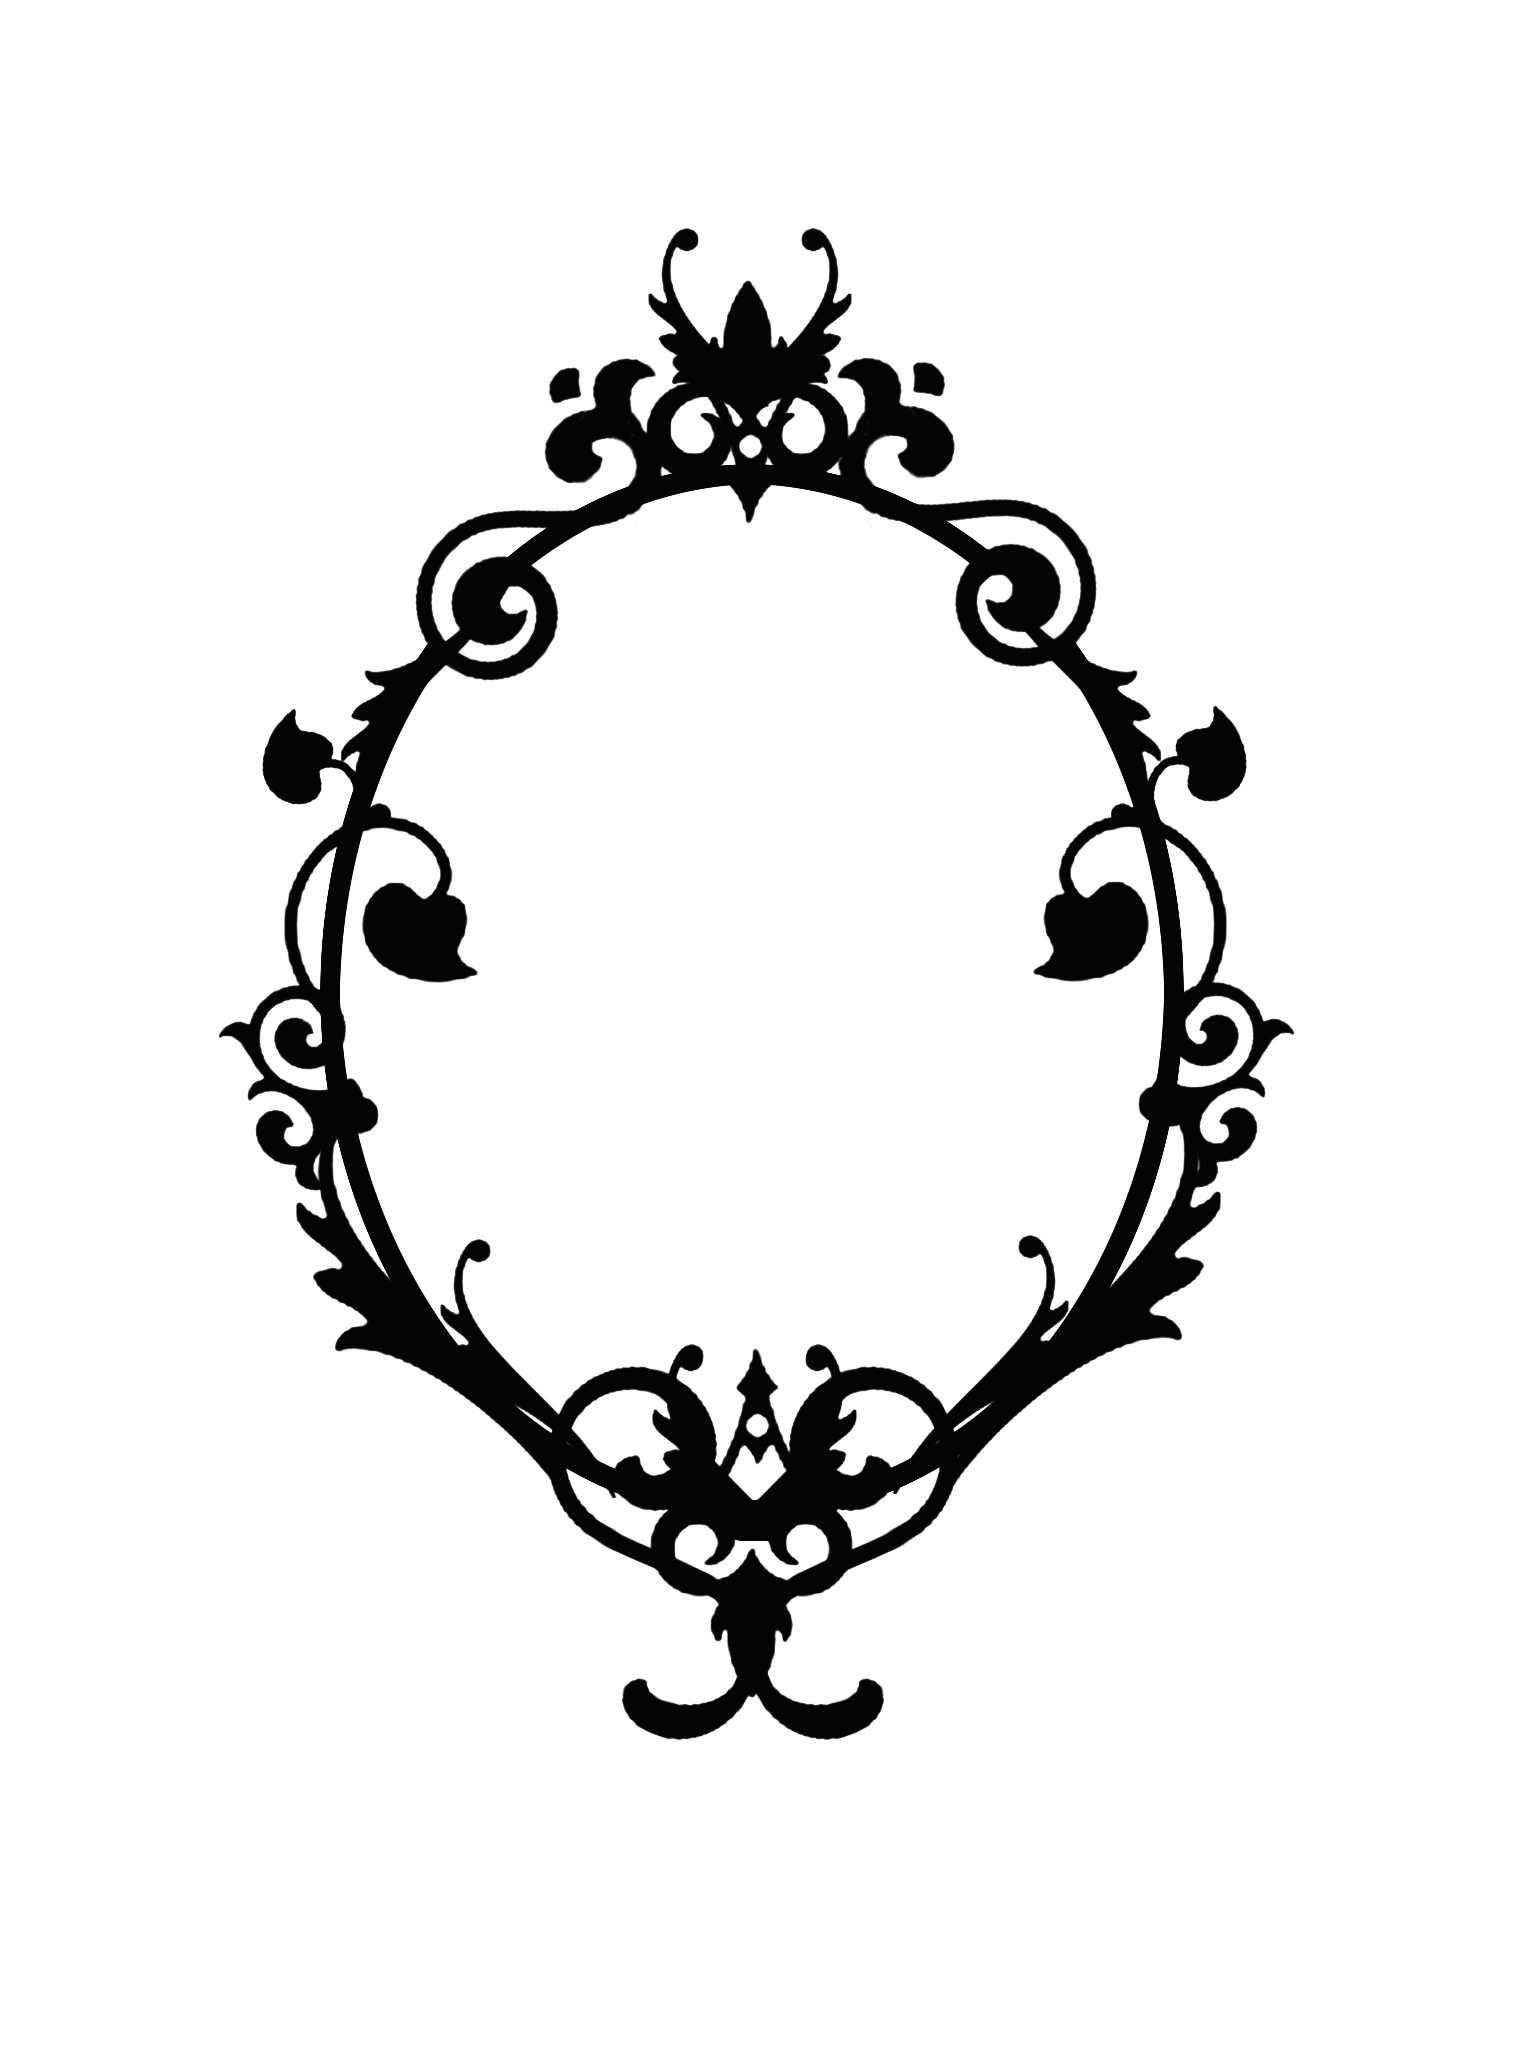 Ornate_Oval_Frame_Cutout_01_by_Tigers_stock.png 1536×2048 ...